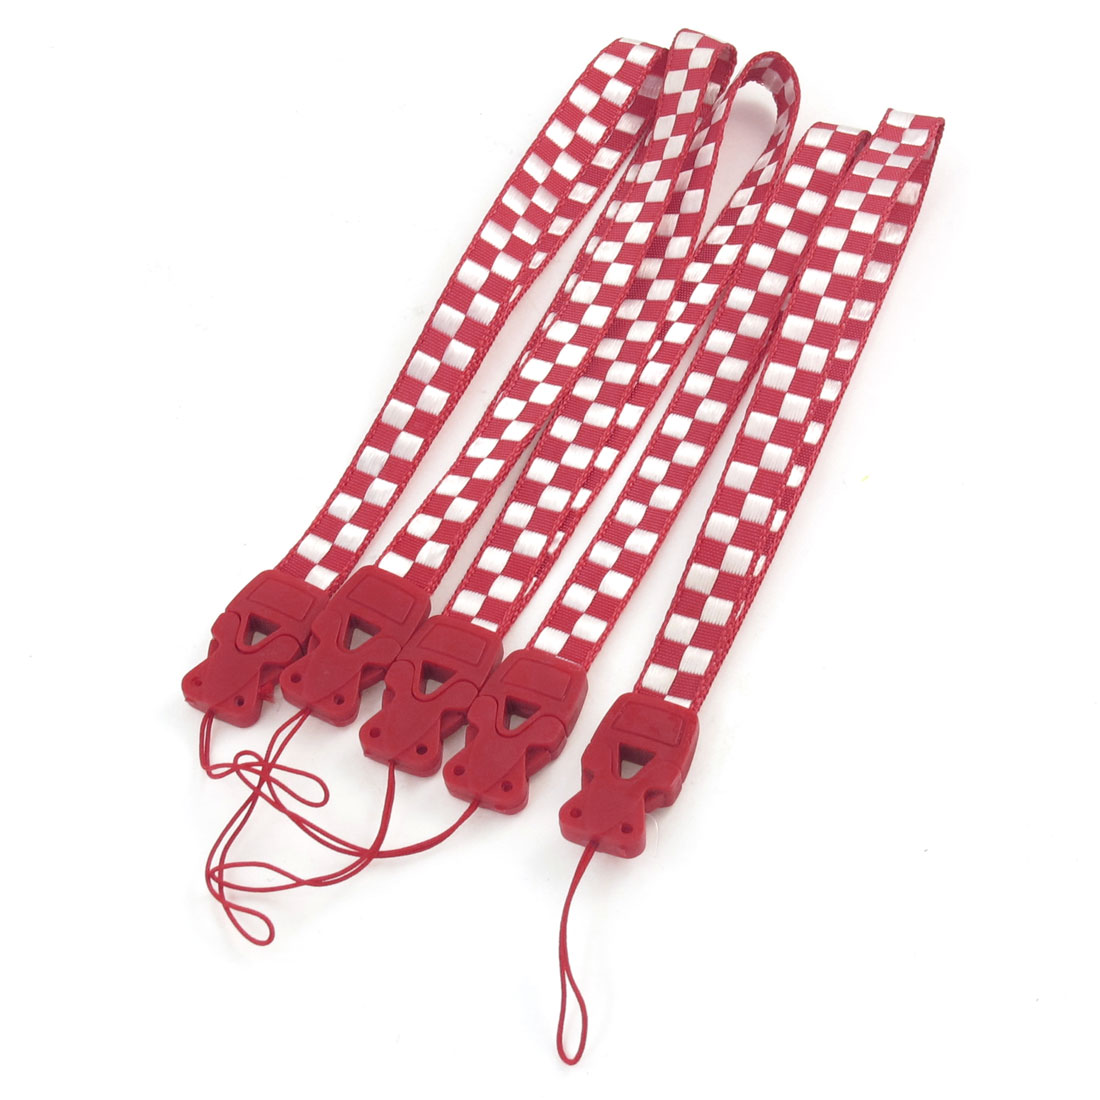 5 Pcs White Red Checkers Print Cell Phone Keys Holder Wrist Strap Lanyard